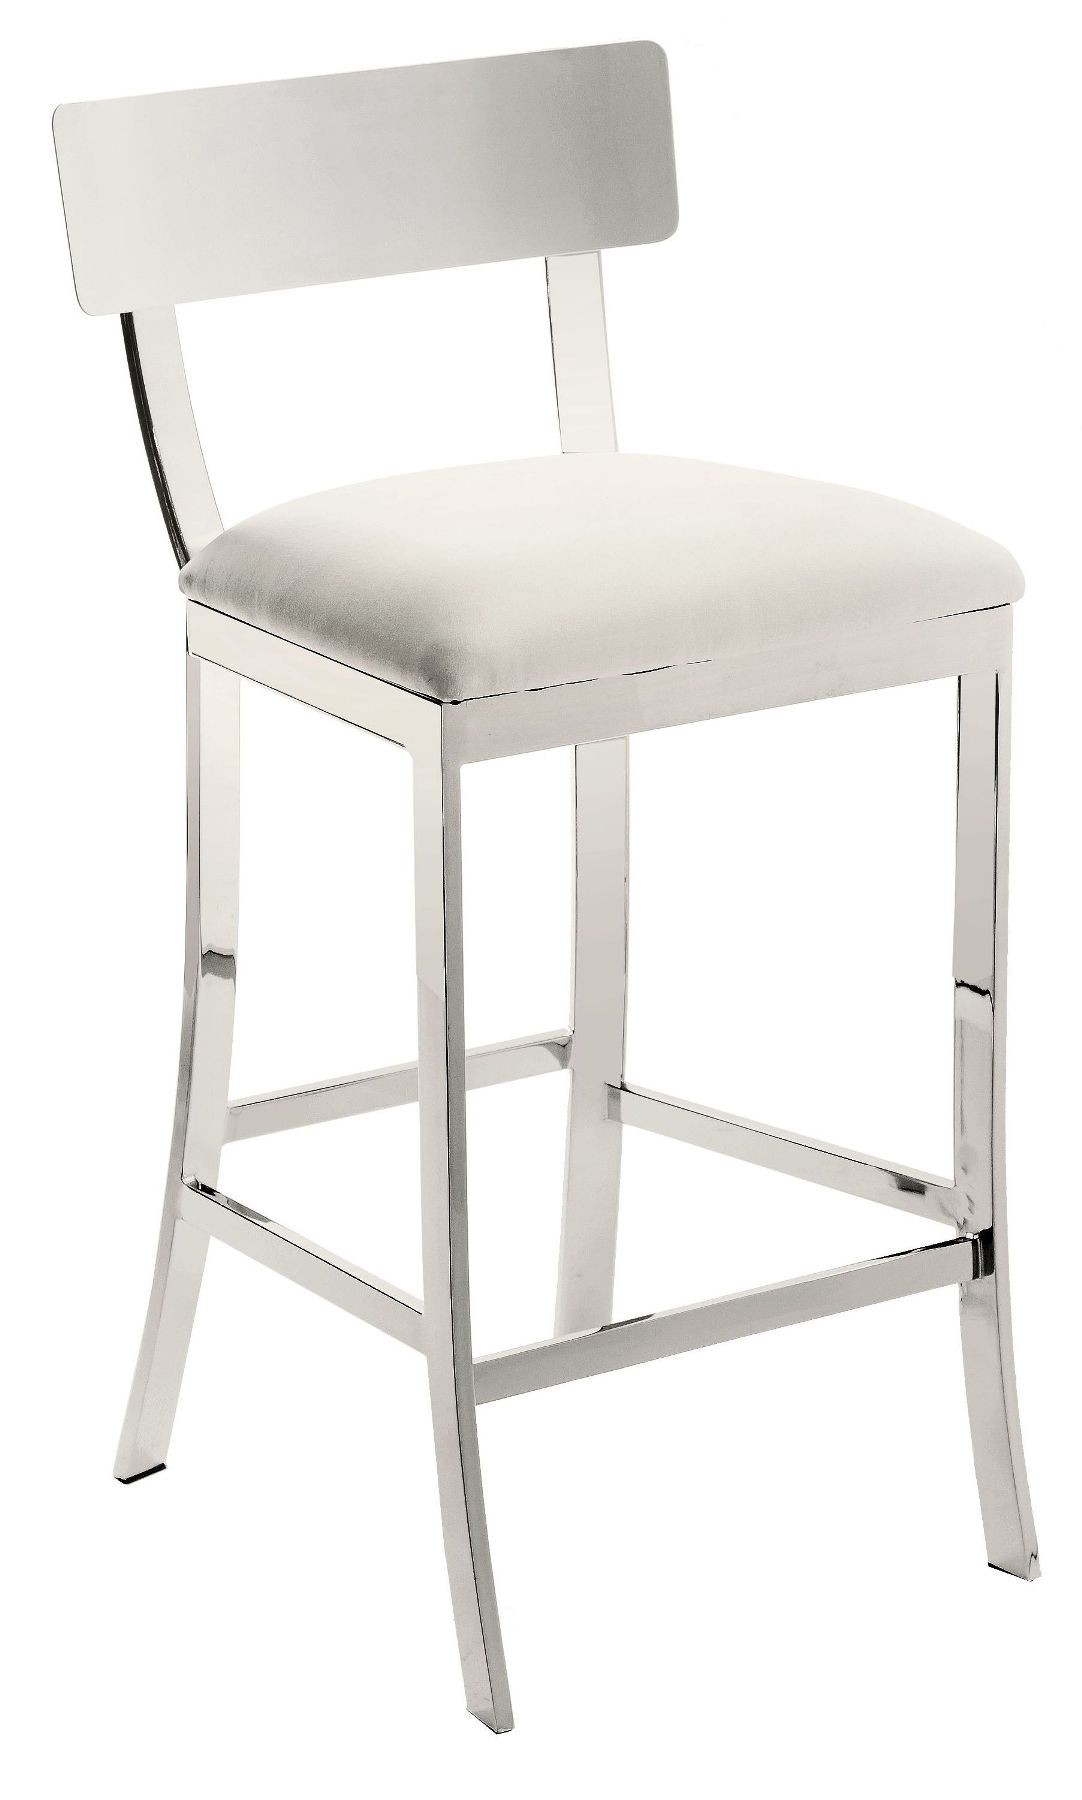 White Counter Height Chairs Maiden White Counter Stool From Sunpan 56336 Coleman